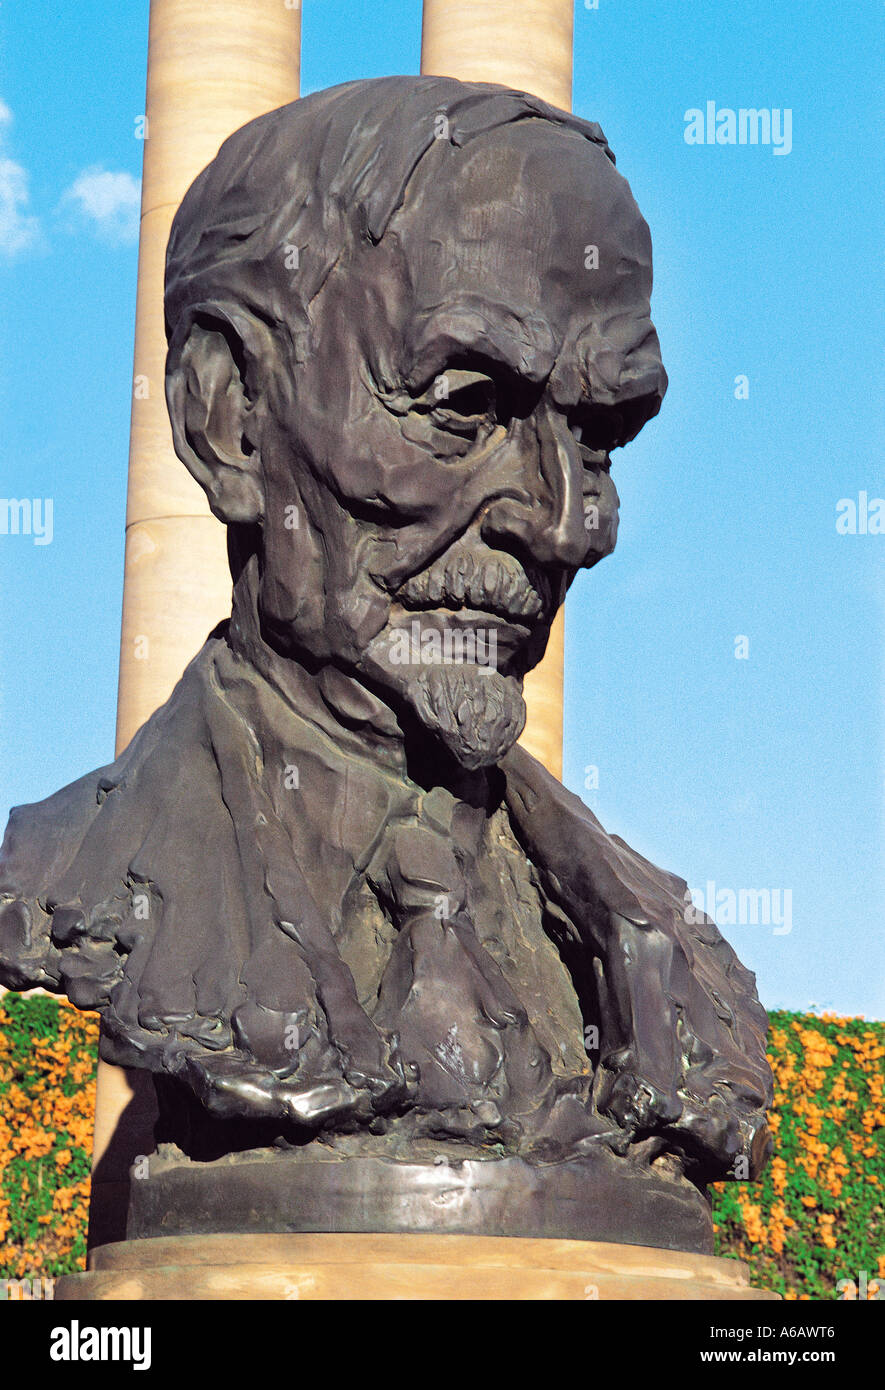 Jan Smuts bust at Union Buildings on Maintjies Kop Pretoria South Africa - Stock Image